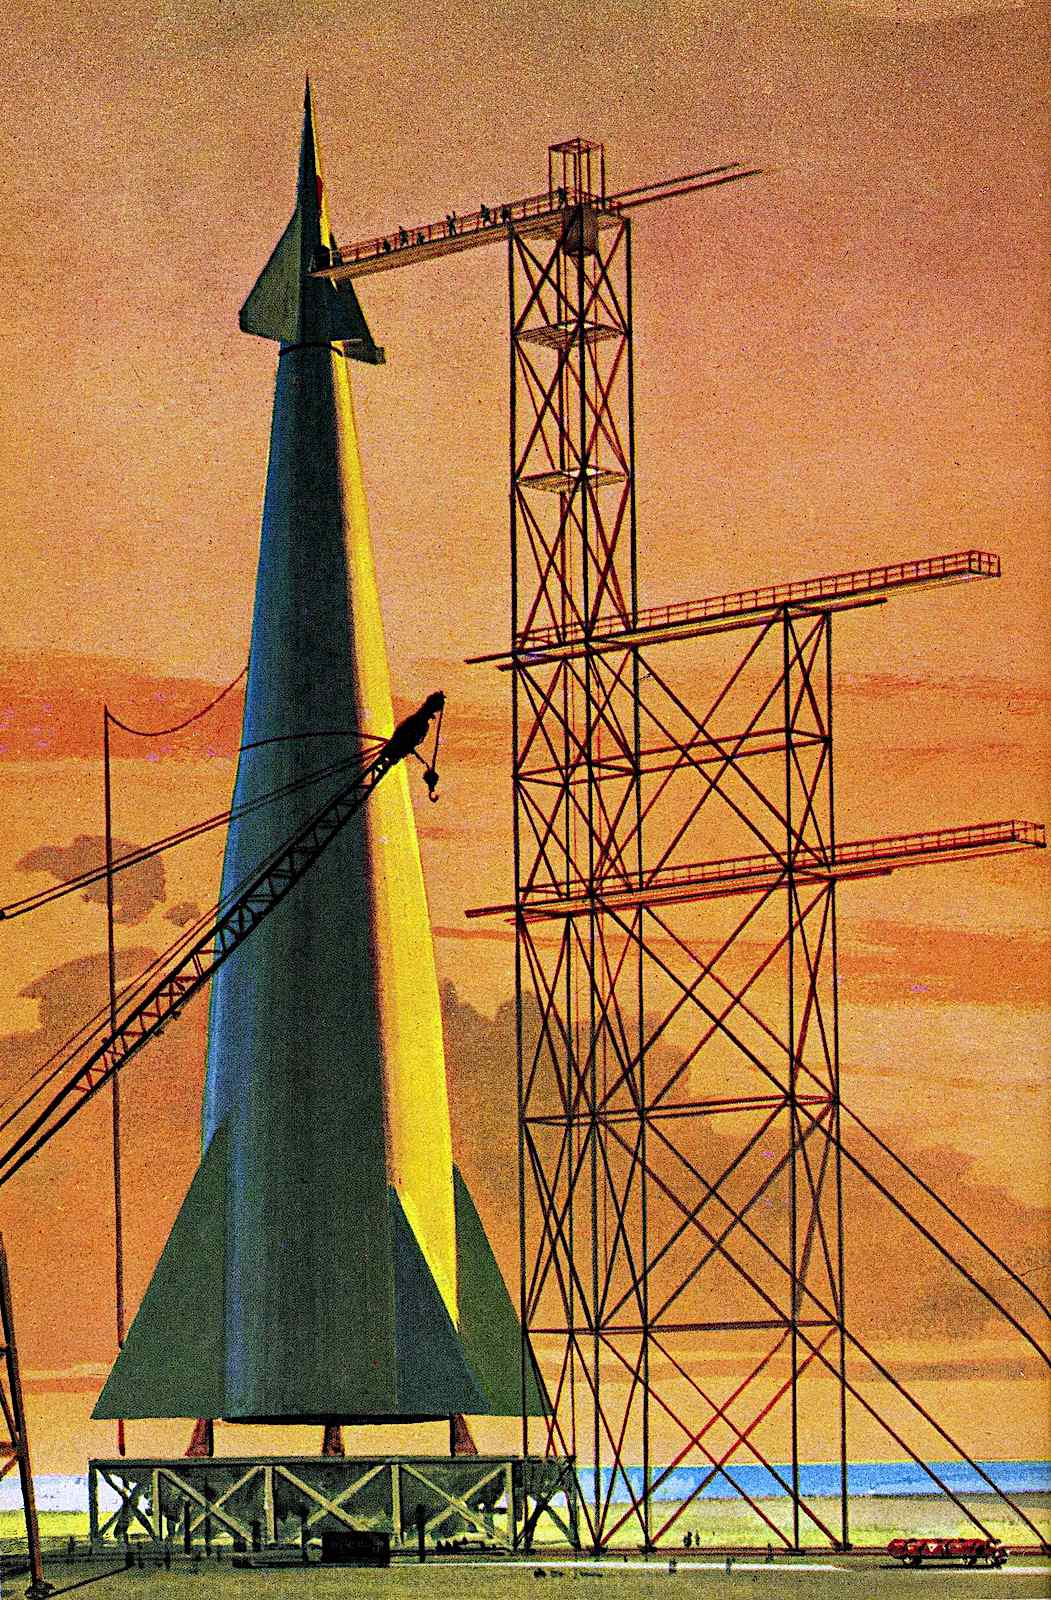 a John Polgreen illustration of a rocket on a launch pad with orange sky